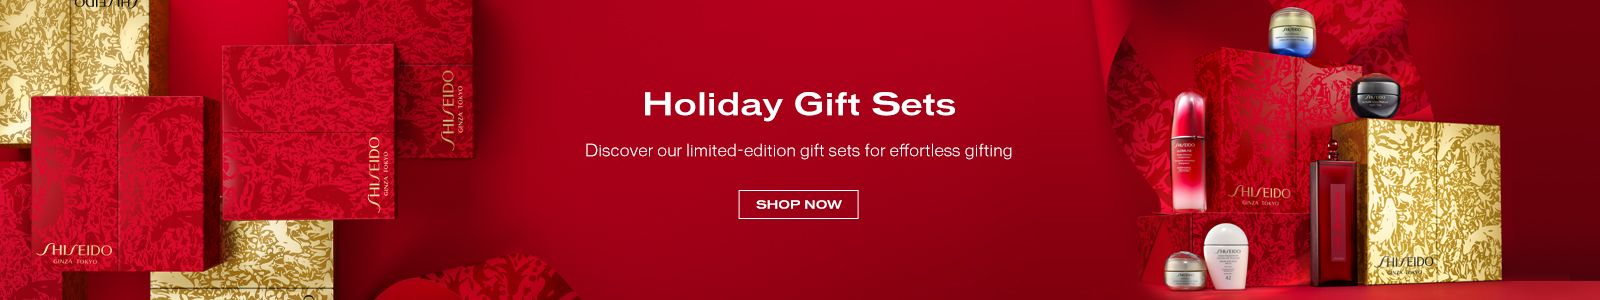 Holiday Gift Sets, Shop Now